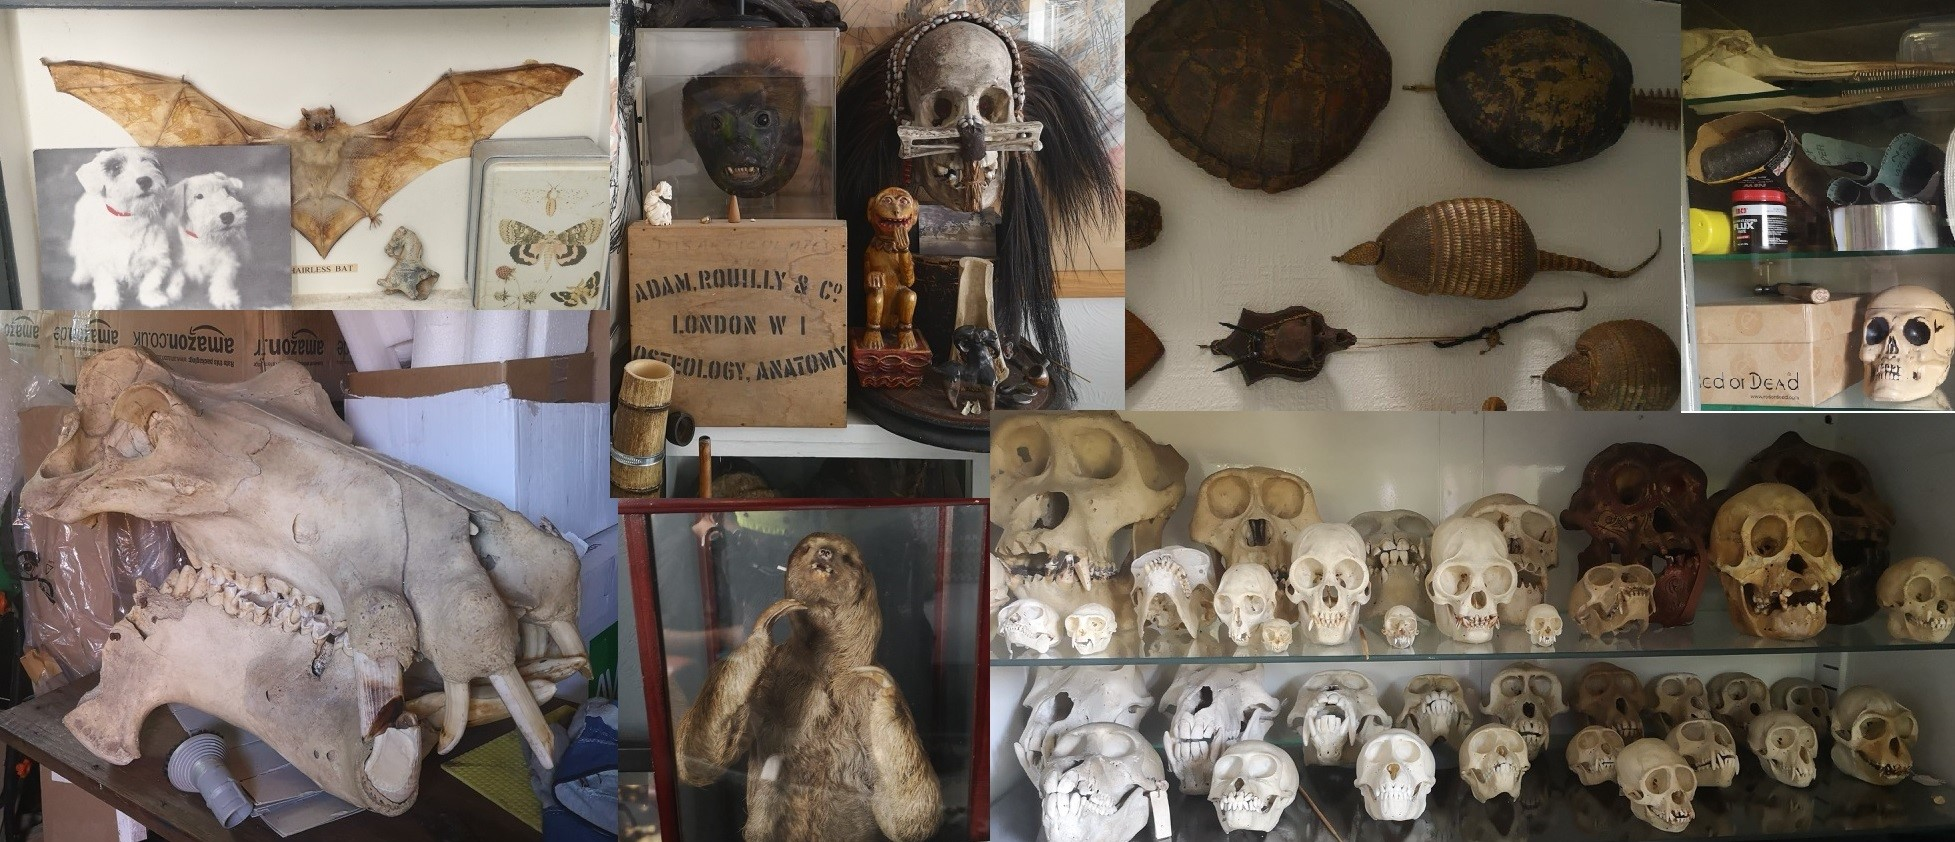 eBay seller pleads guilty to illegally trading endangered animal skulls